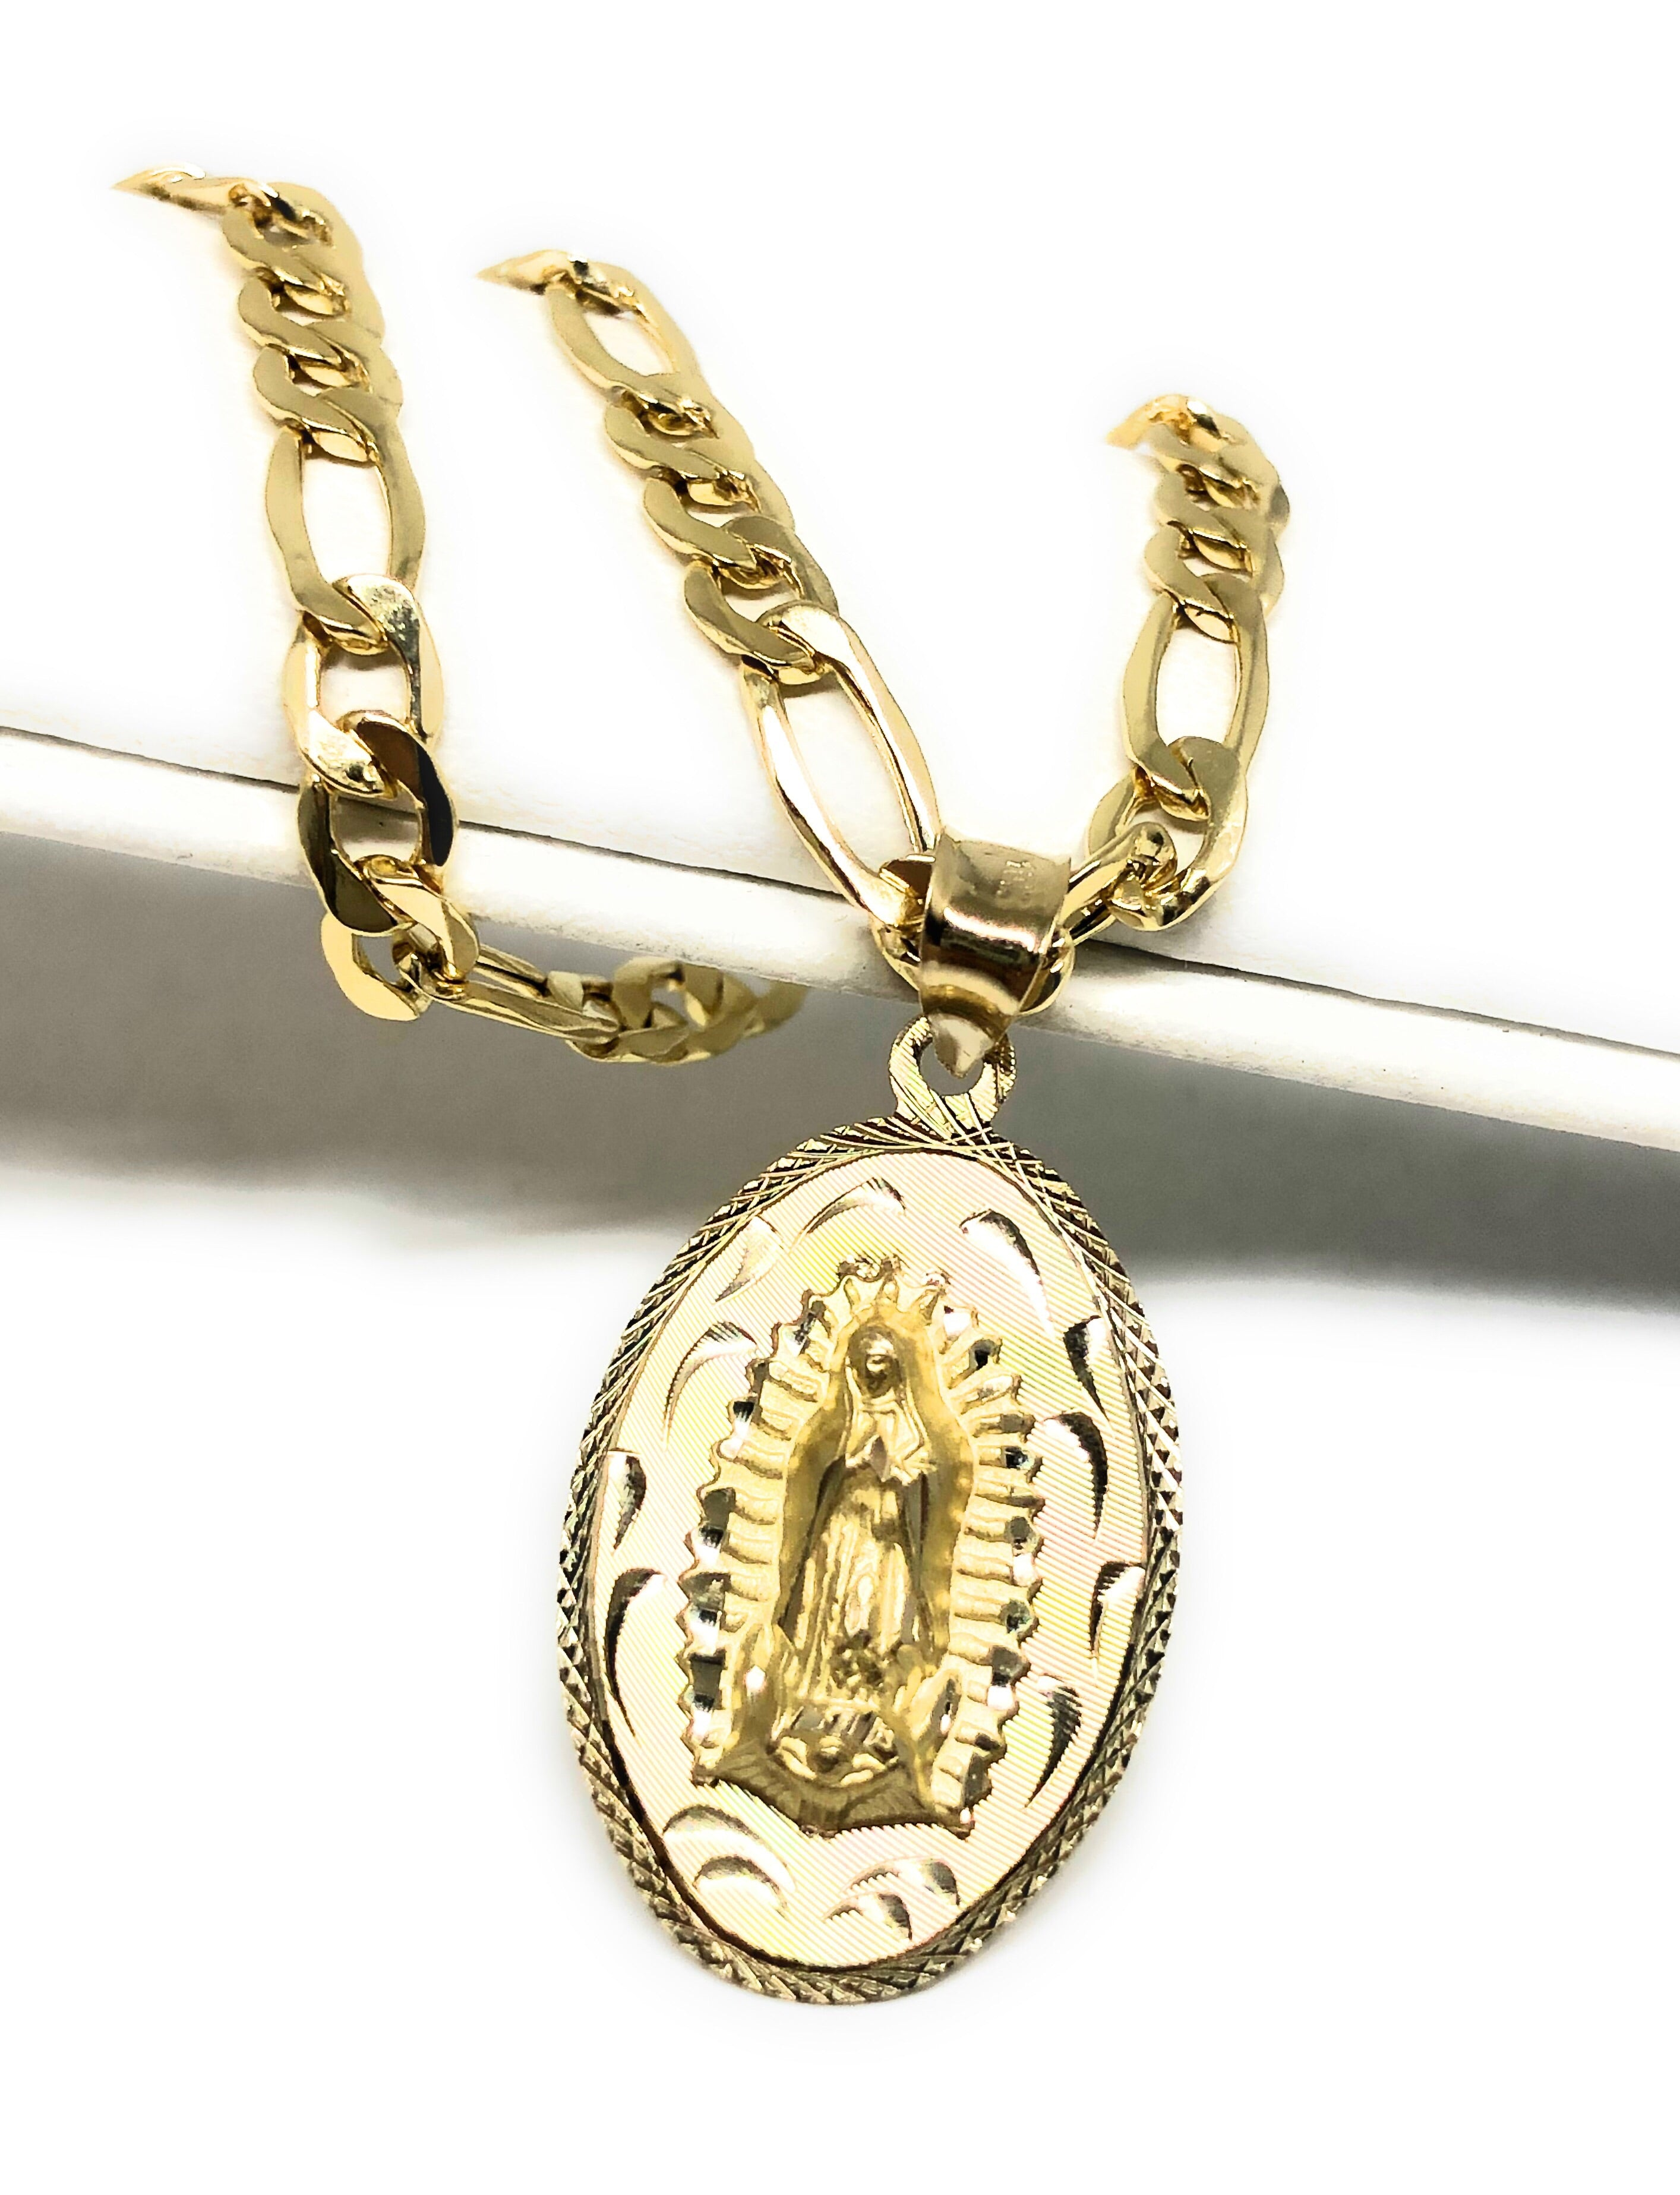 10k Solid Gold Yellow 2 Sided Virrgin Mary Jesus Christ Dos Lados Pendant Necklace with Chain